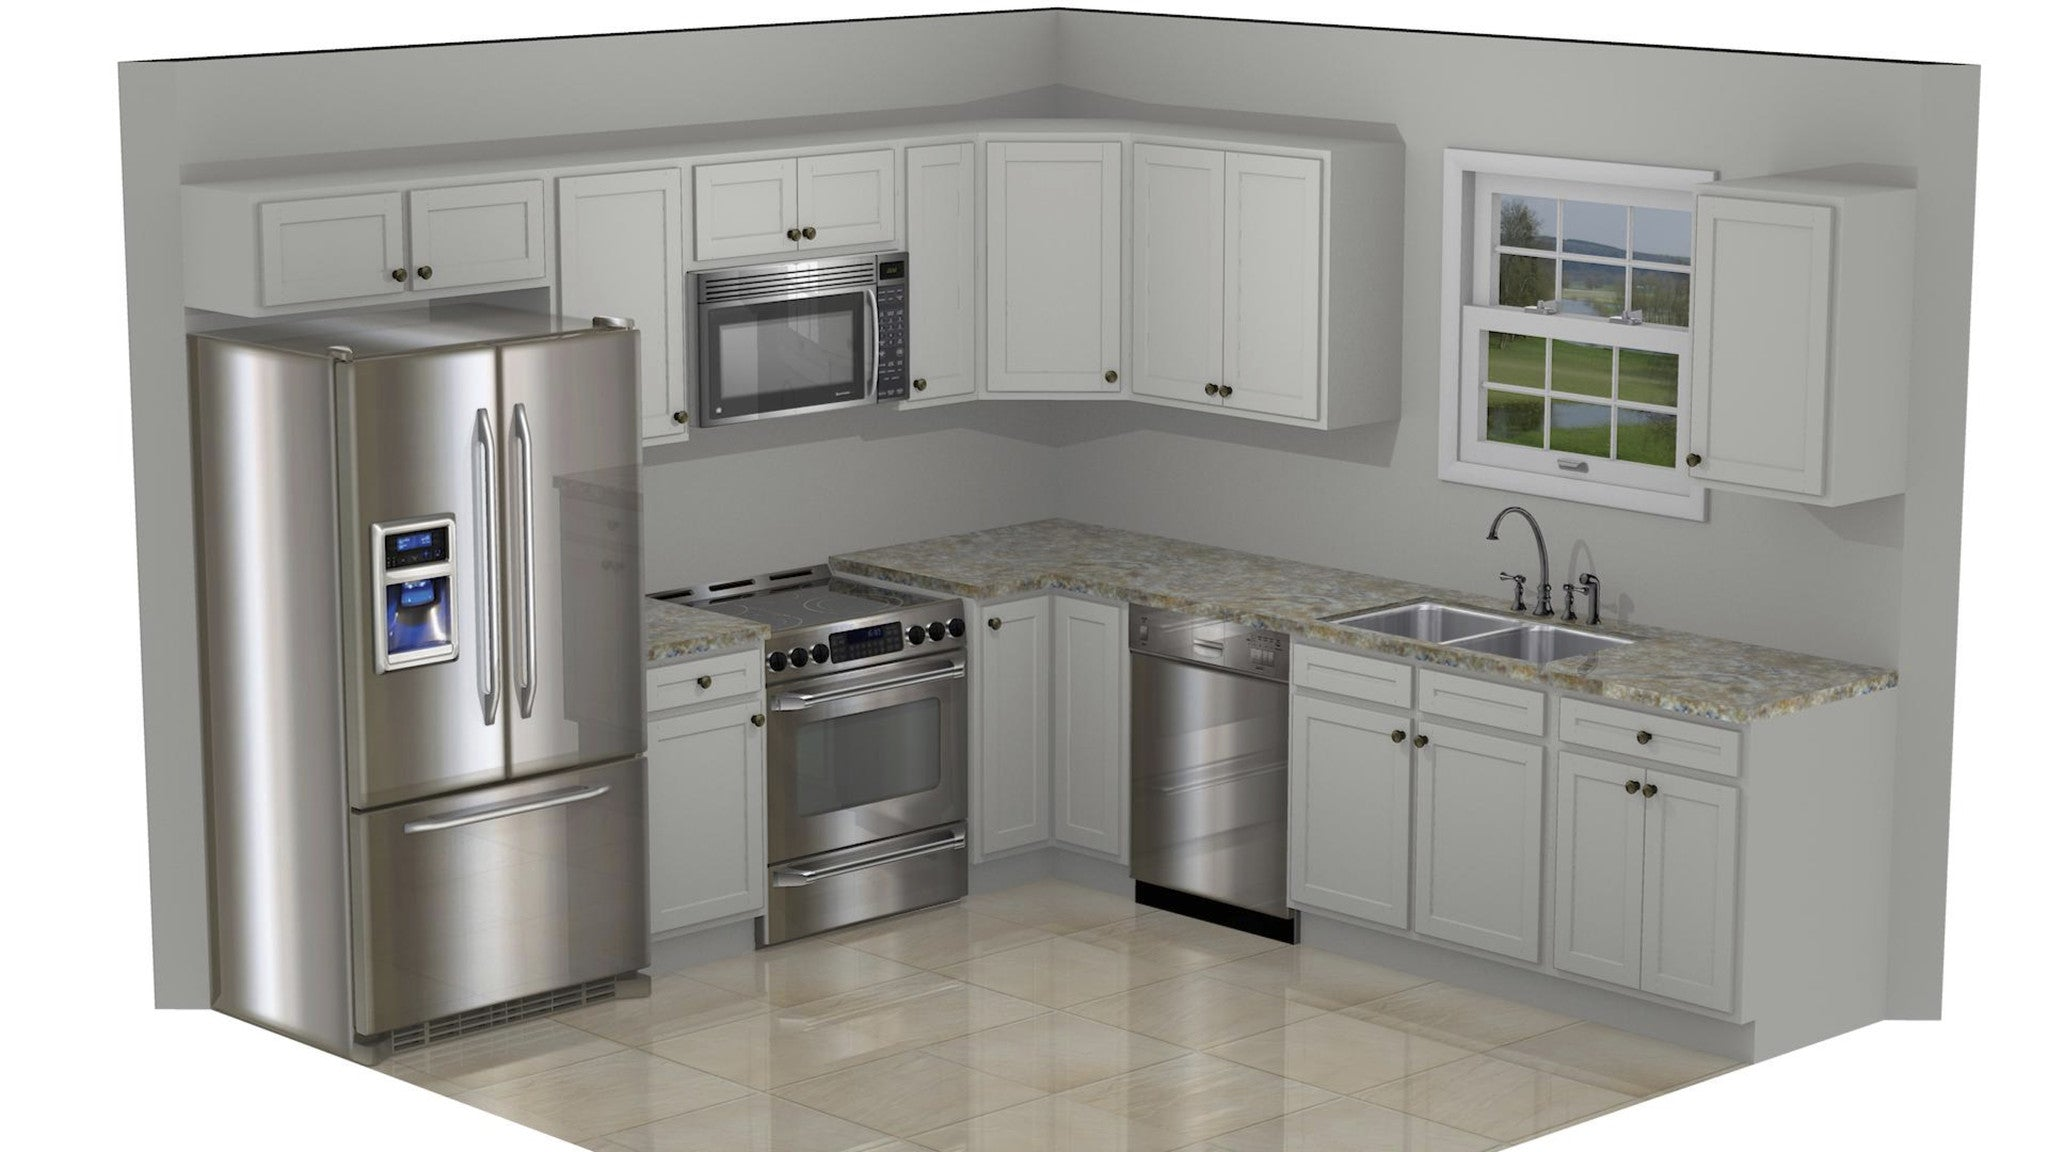 What is a 10x10 kitchen? – Wholesale Cabinet Supply